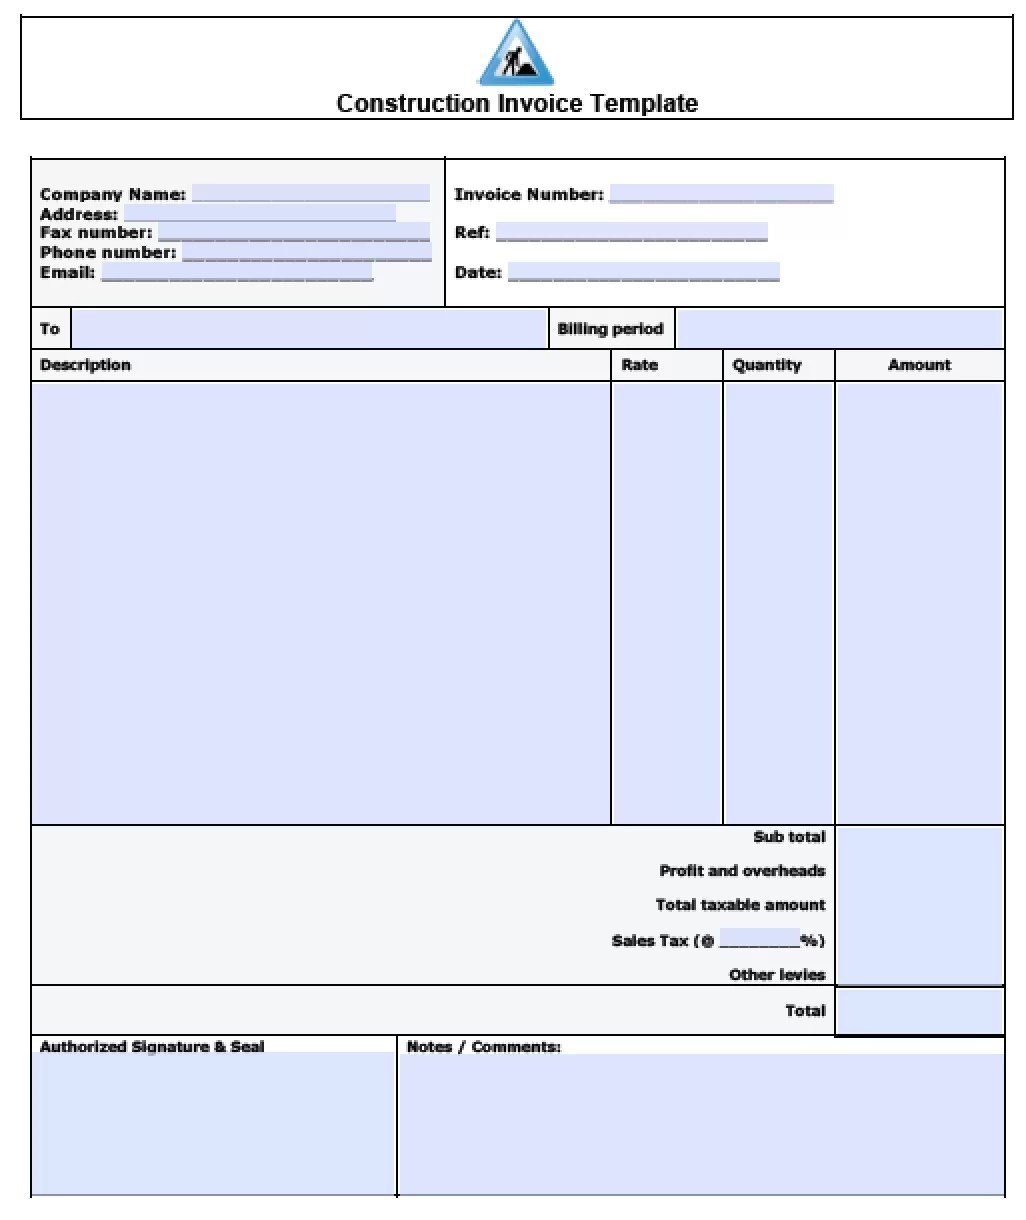 construction estimate template all file resume sample construction estimate template 5 construction estimate templates word excel construction invoice template excel